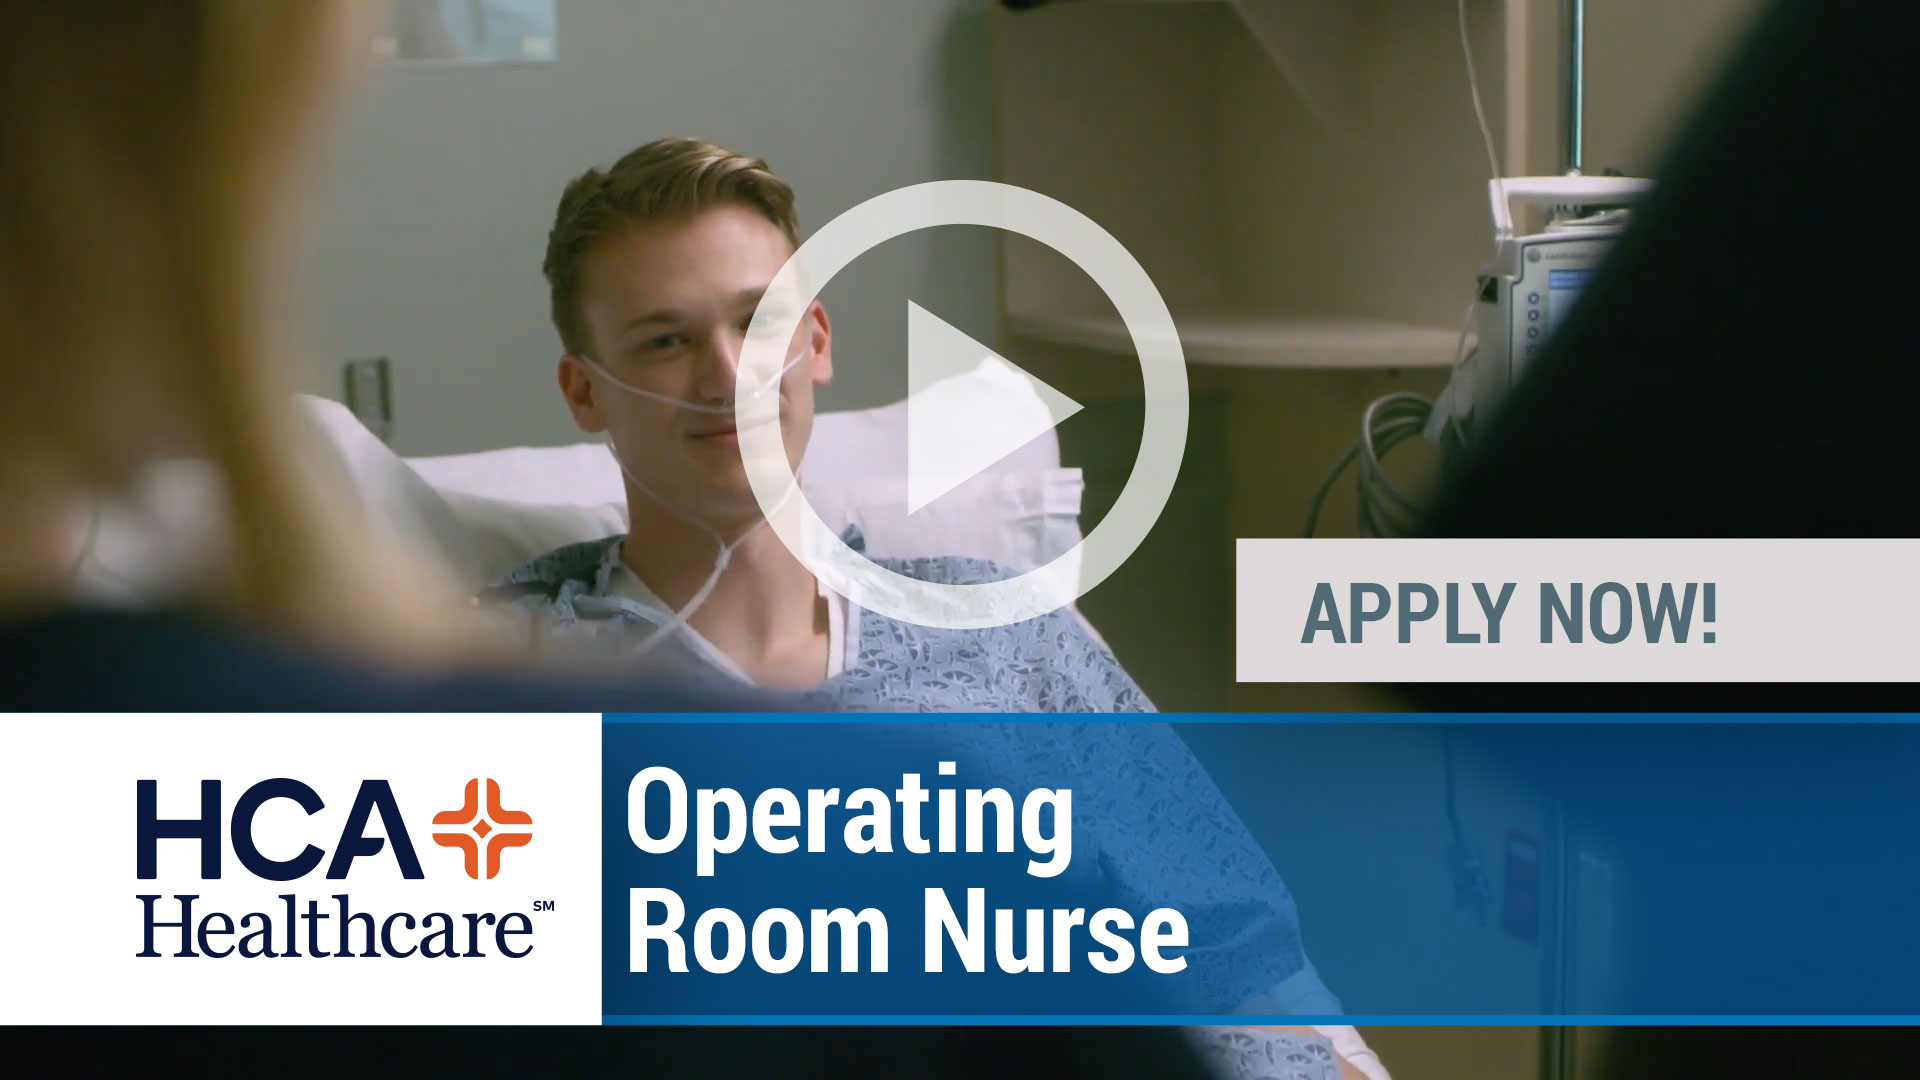 Watch our careers video for available job opening Operating Room Nurse in Dublin, Georgia